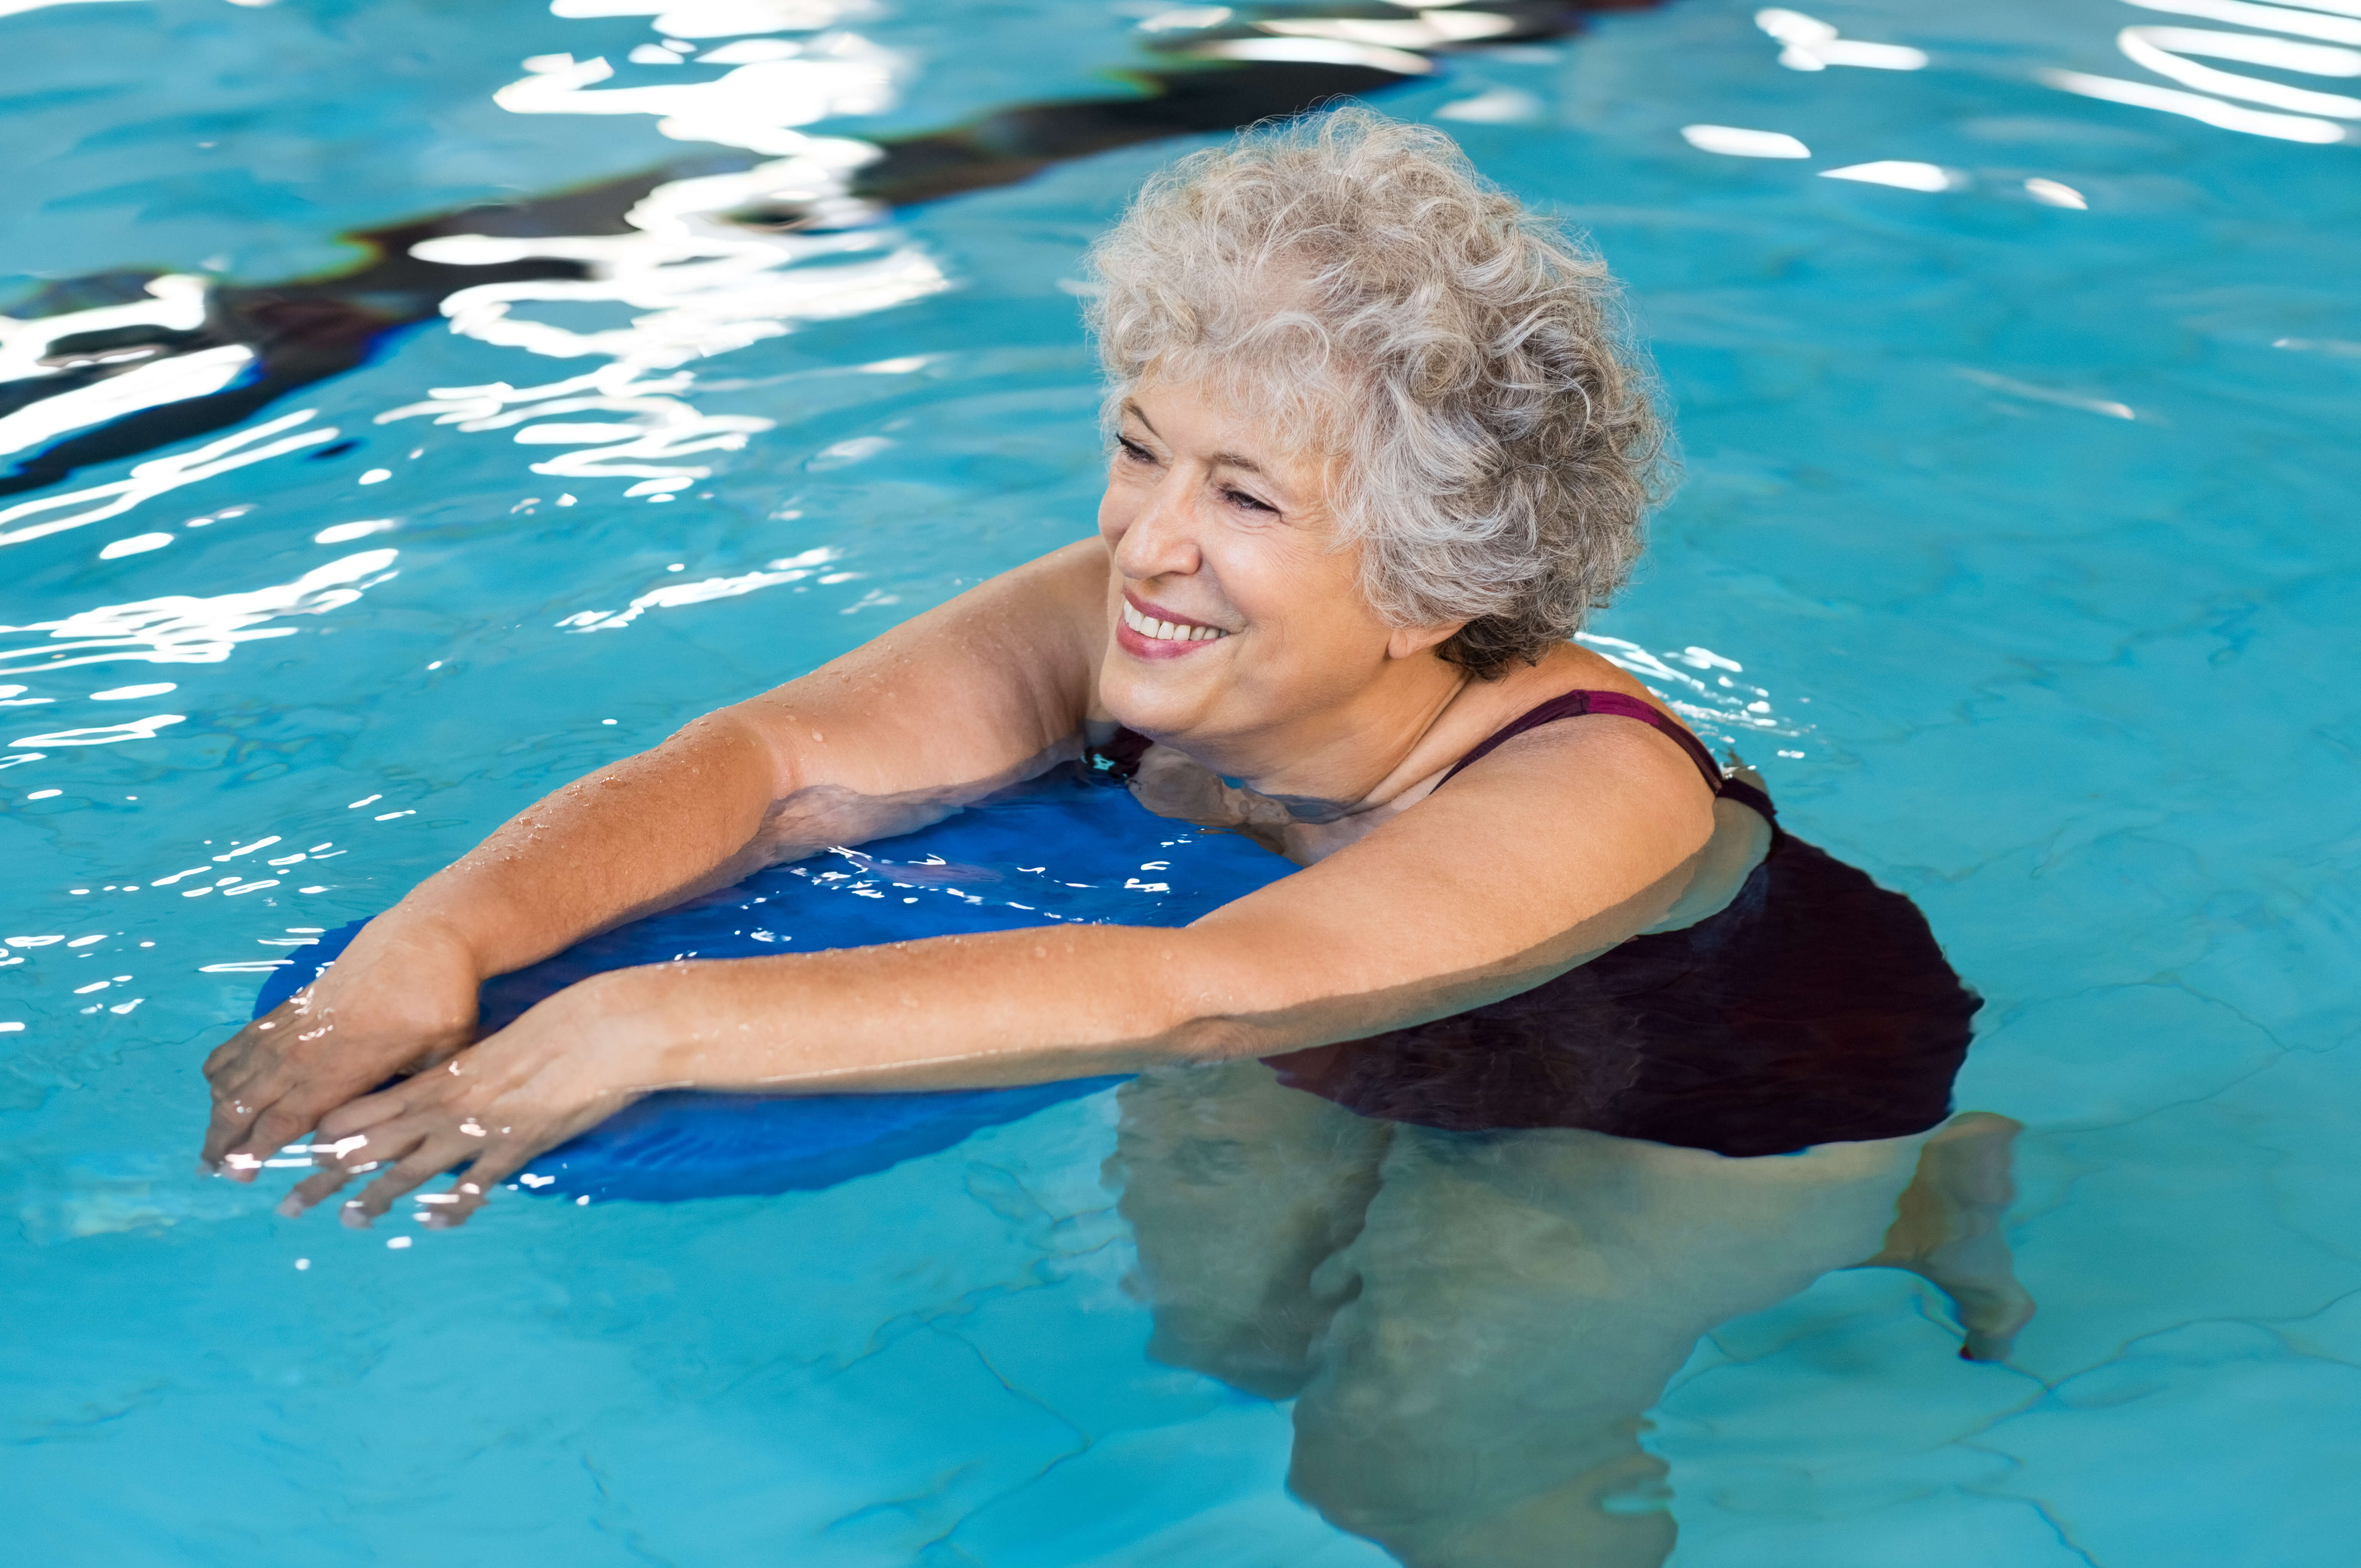 Two Features of Aquatic Therapy